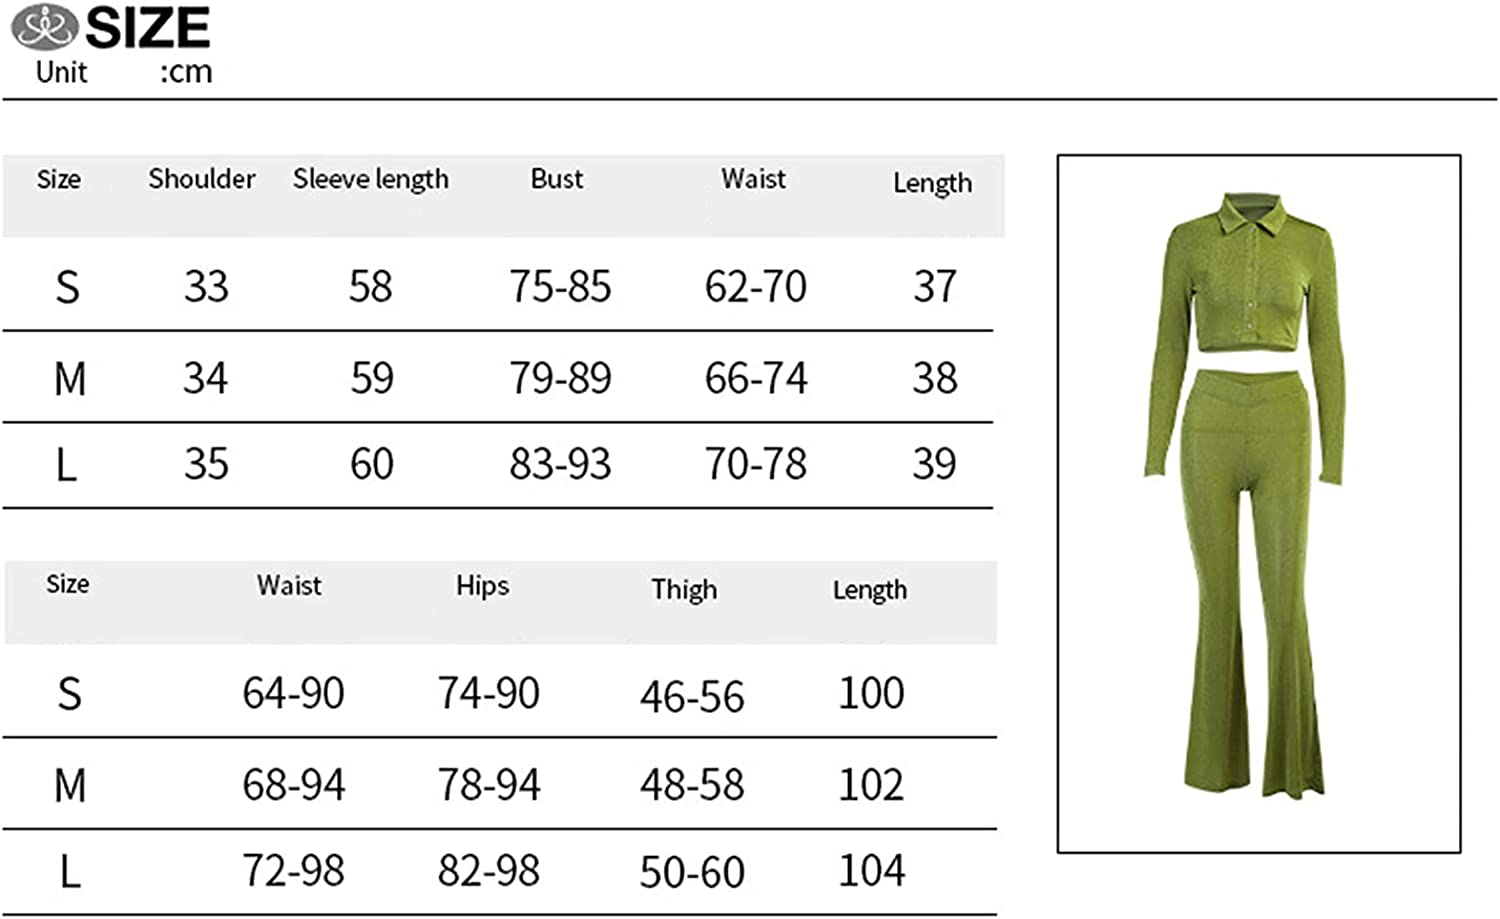 2 Piece Outfits for Women Sexy Long Sleeve Button Down Shirts Top High Waist Flared Pants Set Solid Color Y2K Suit